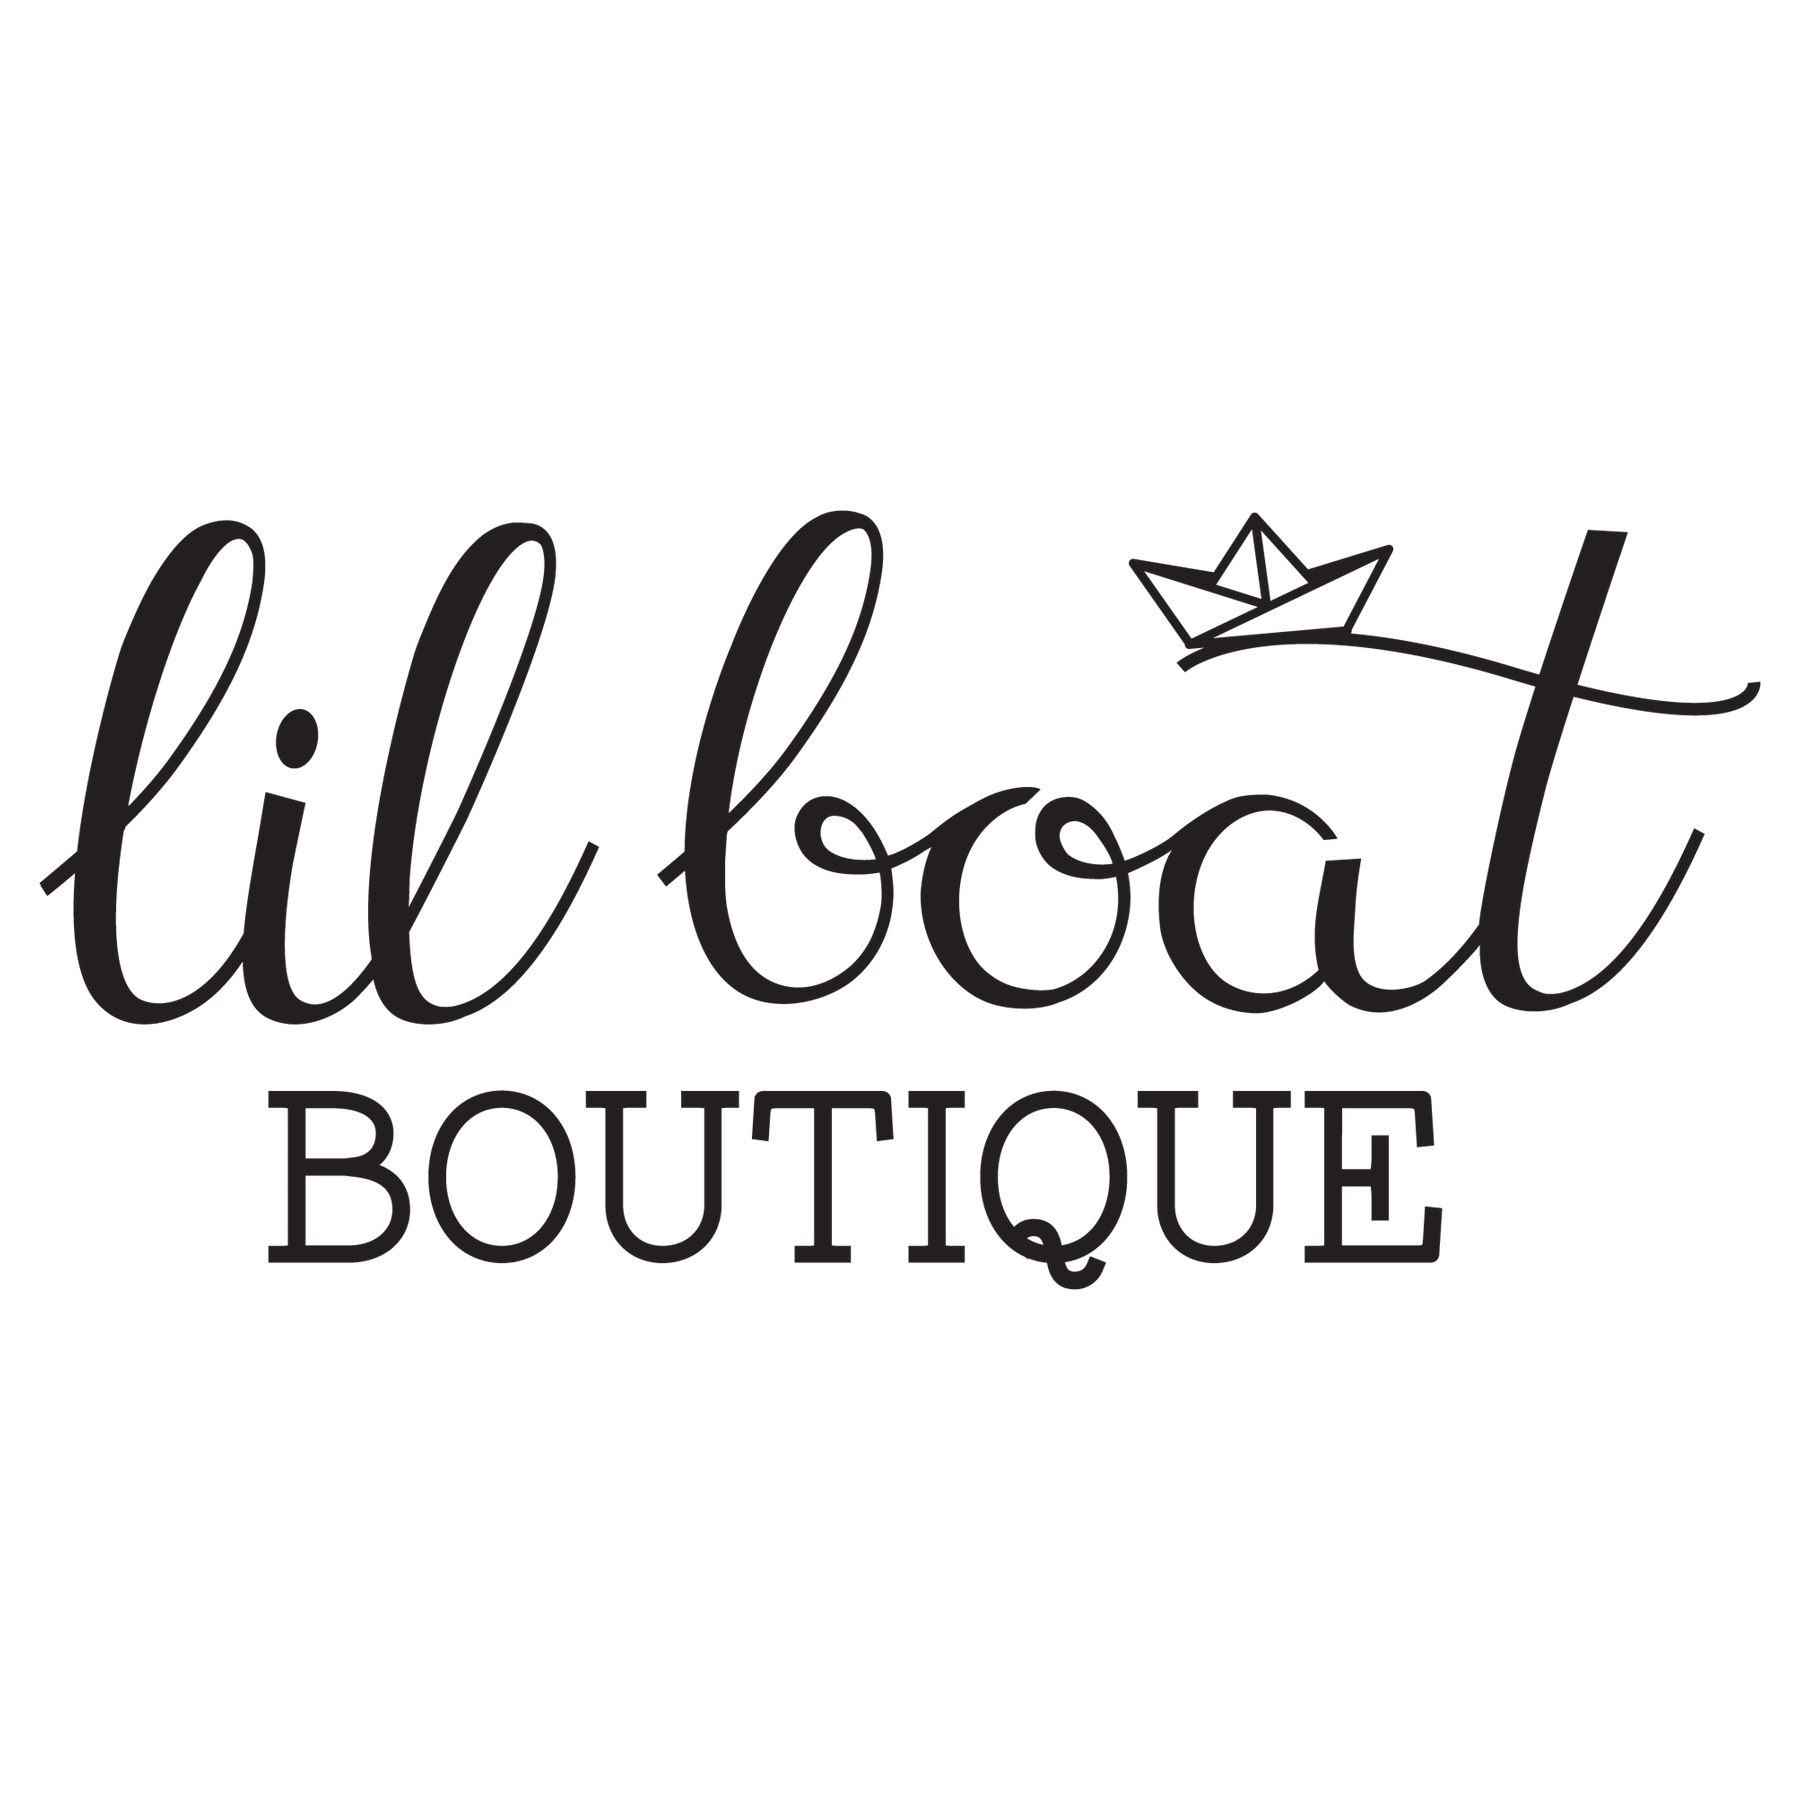 Lil Boat Boutique Square White.png